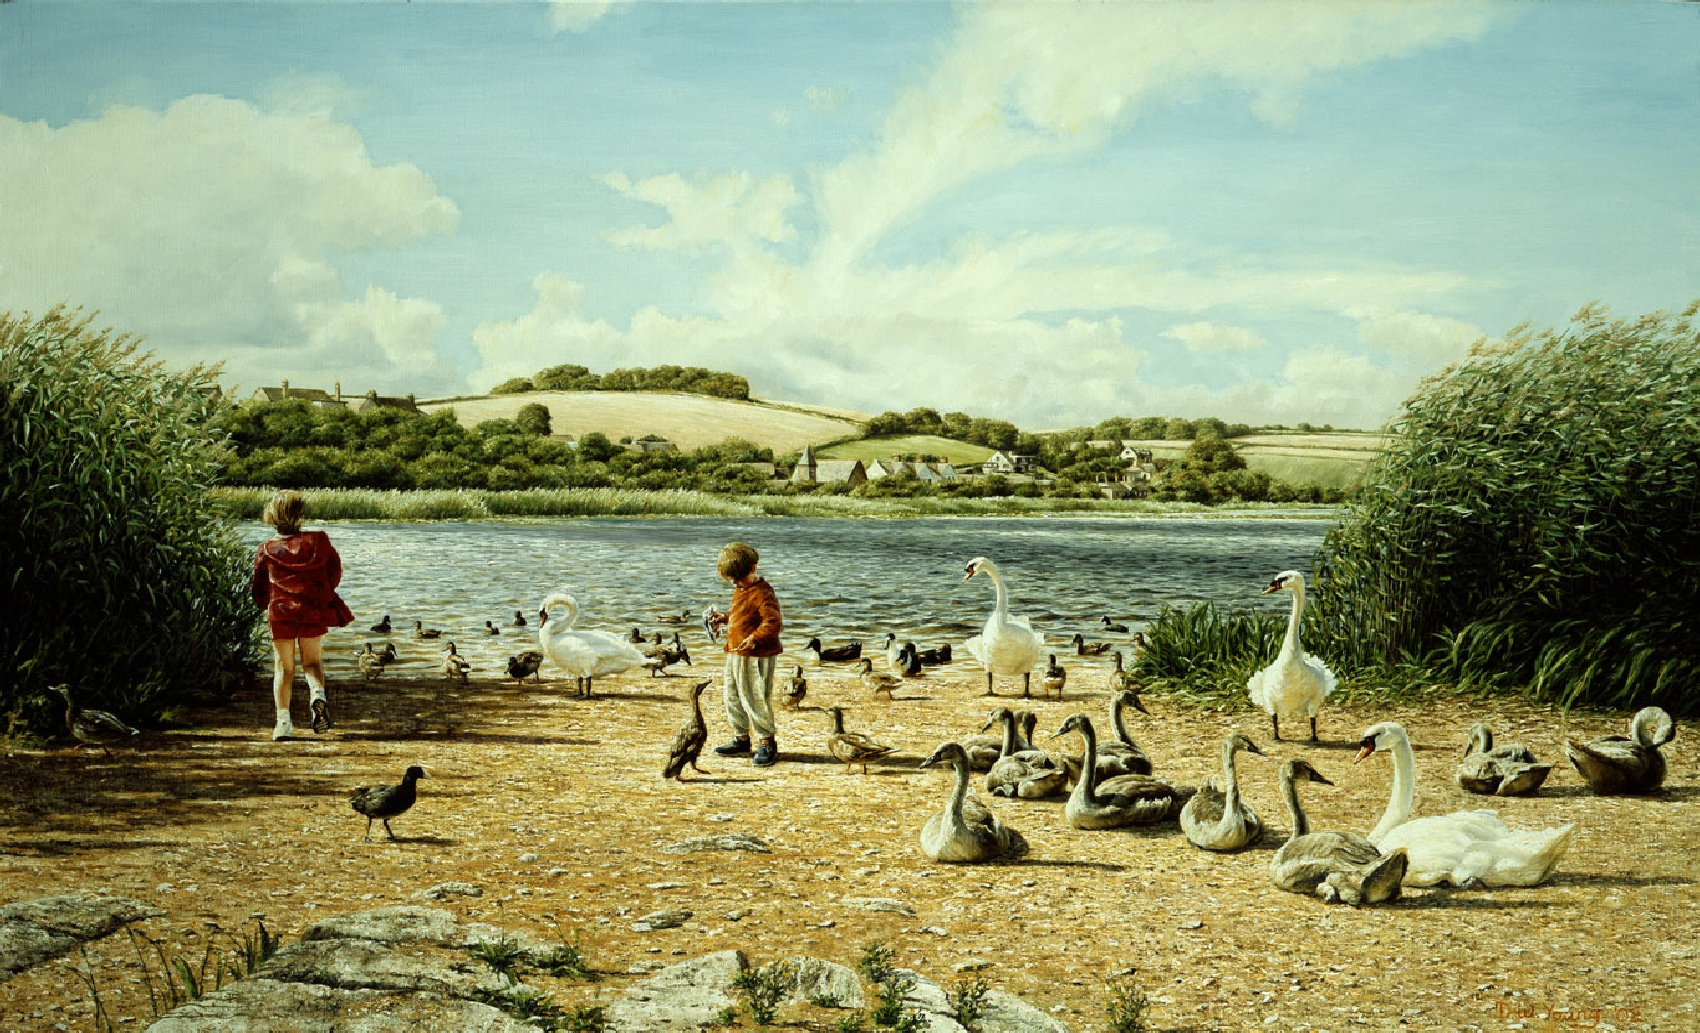 Summer Breeze with Swans, Slapton Ley painting by David William Young